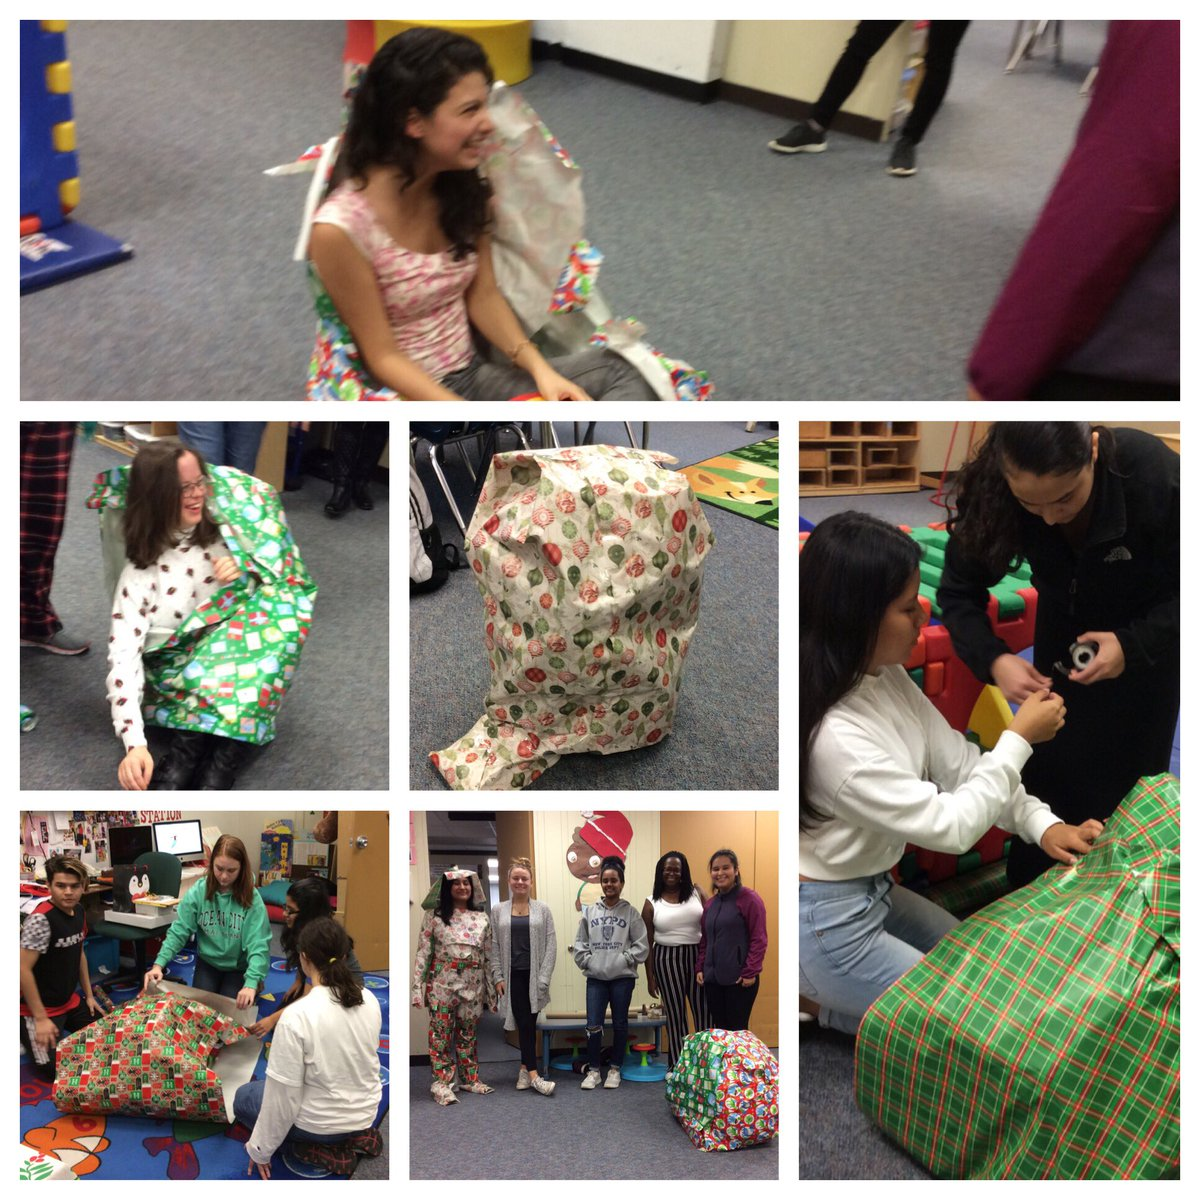 Wait, is it a present or a person? Holiday fun!  <a target='_blank' href='http://twitter.com/APS_CTAE'>@APS_CTAE</a> <a target='_blank' href='http://twitter.com/APSCareerCenter'>@APSCareerCenter</a> <a target='_blank' href='http://twitter.com/APS_SecondaryEd'>@APS_SecondaryEd</a> <a target='_blank' href='http://twitter.com/AccCounseling'>@AccCounseling</a> <a target='_blank' href='https://t.co/4XPTwjyfRv'>https://t.co/4XPTwjyfRv</a>